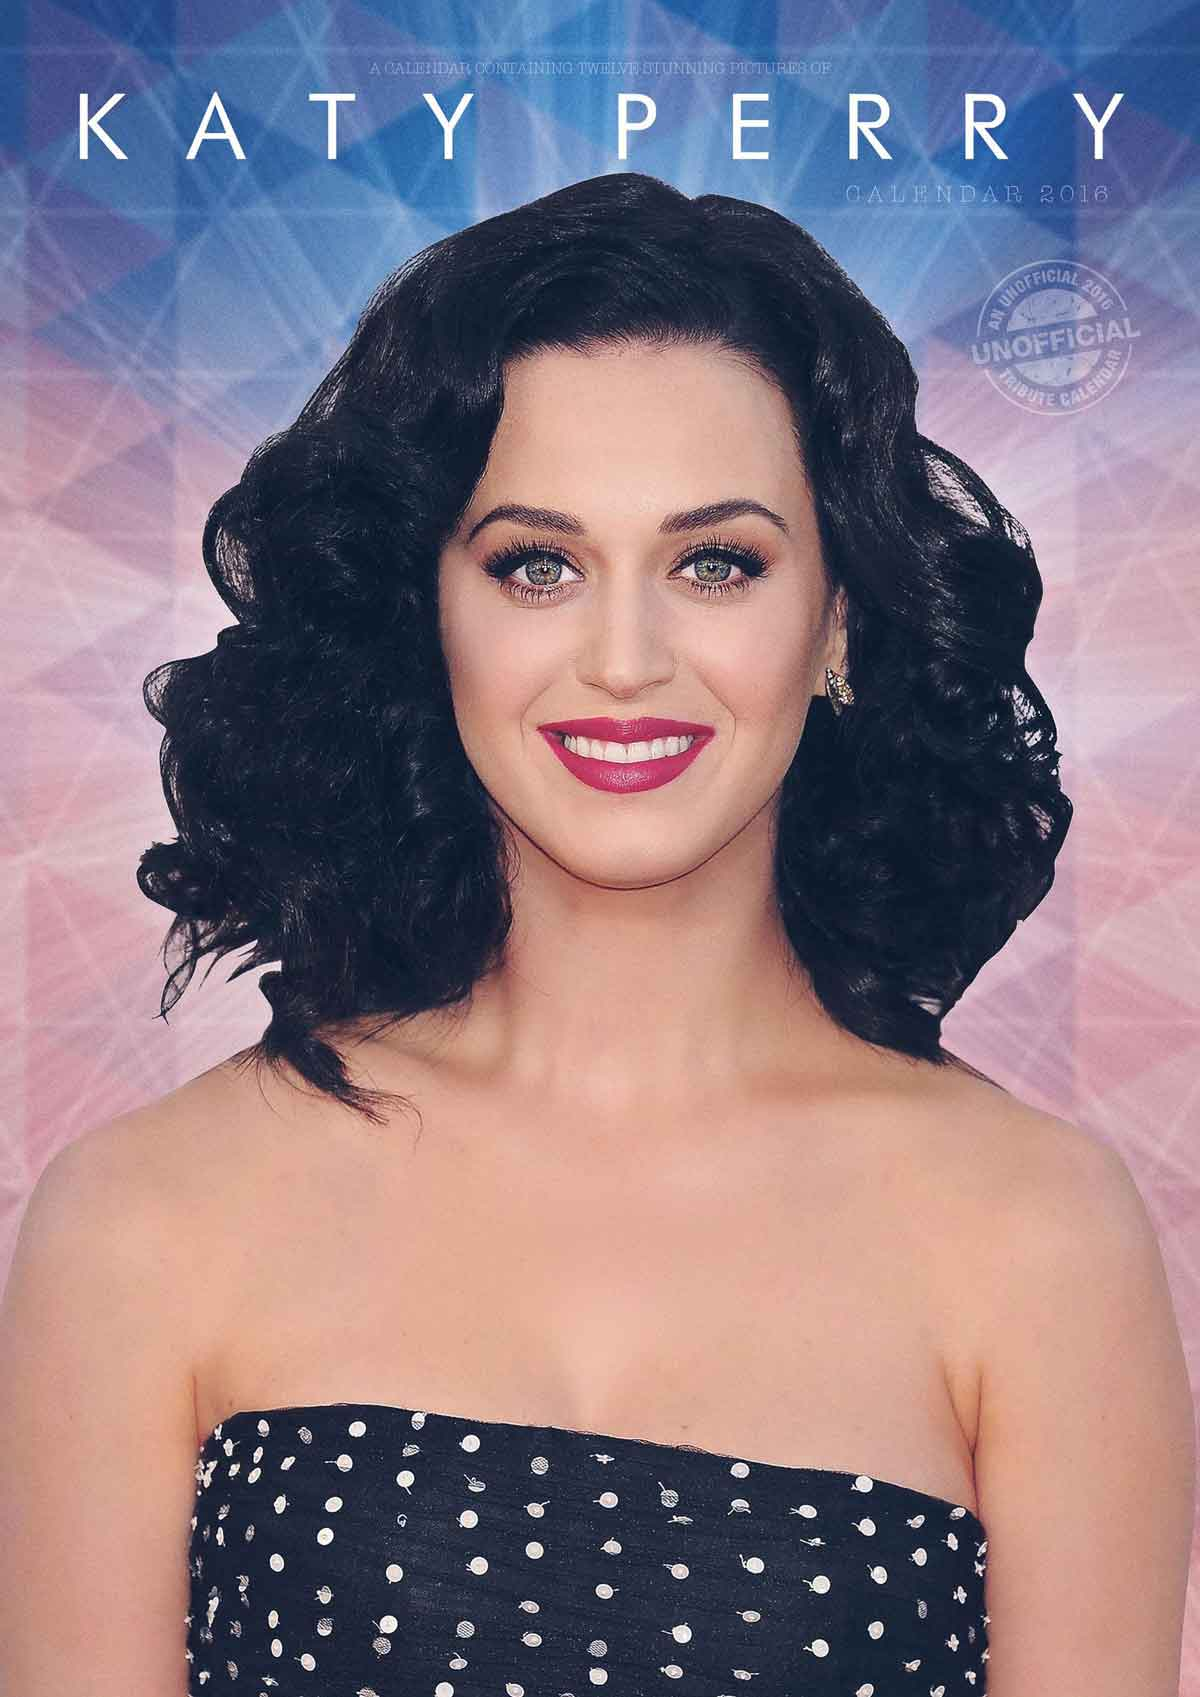 Katy Perry A3 Calendar 2016 - Calendar Club UK